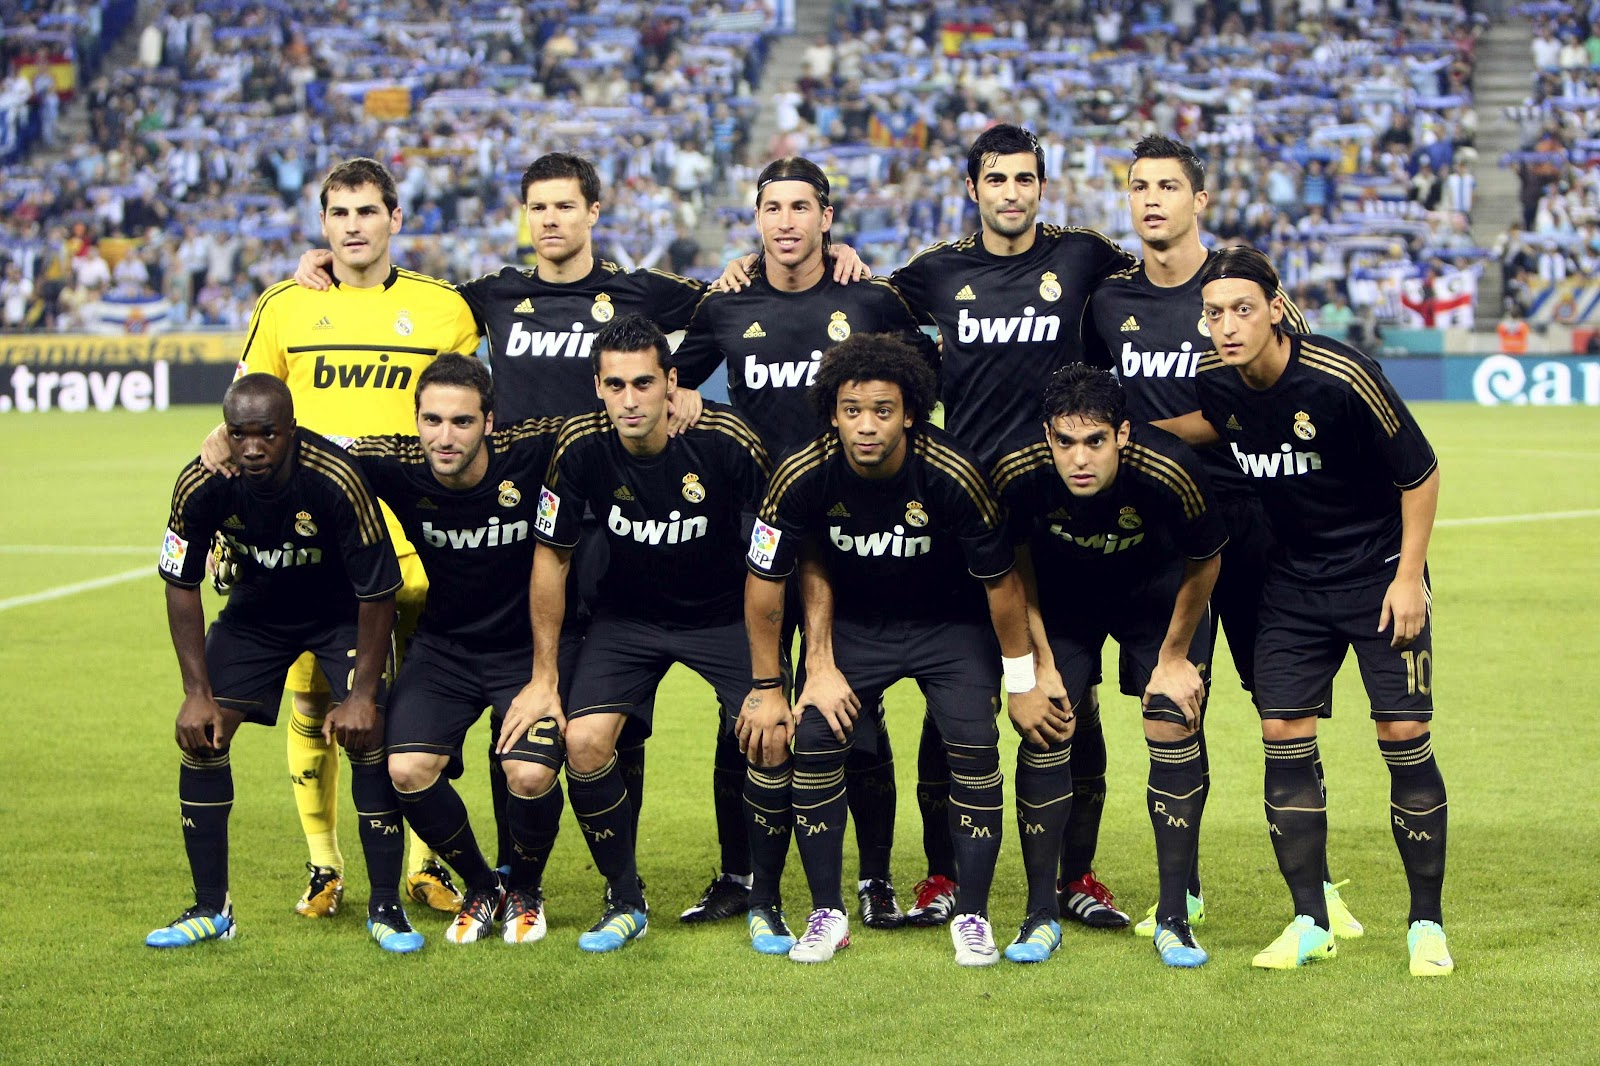 http://1.bp.blogspot.com/-f5STUmCyXwI/UQoES11xyZI/AAAAAAAAHSg/p7EzC90bdeU/s1600/Real+Madrid+hd+Wallpapers+2013_2.jpg